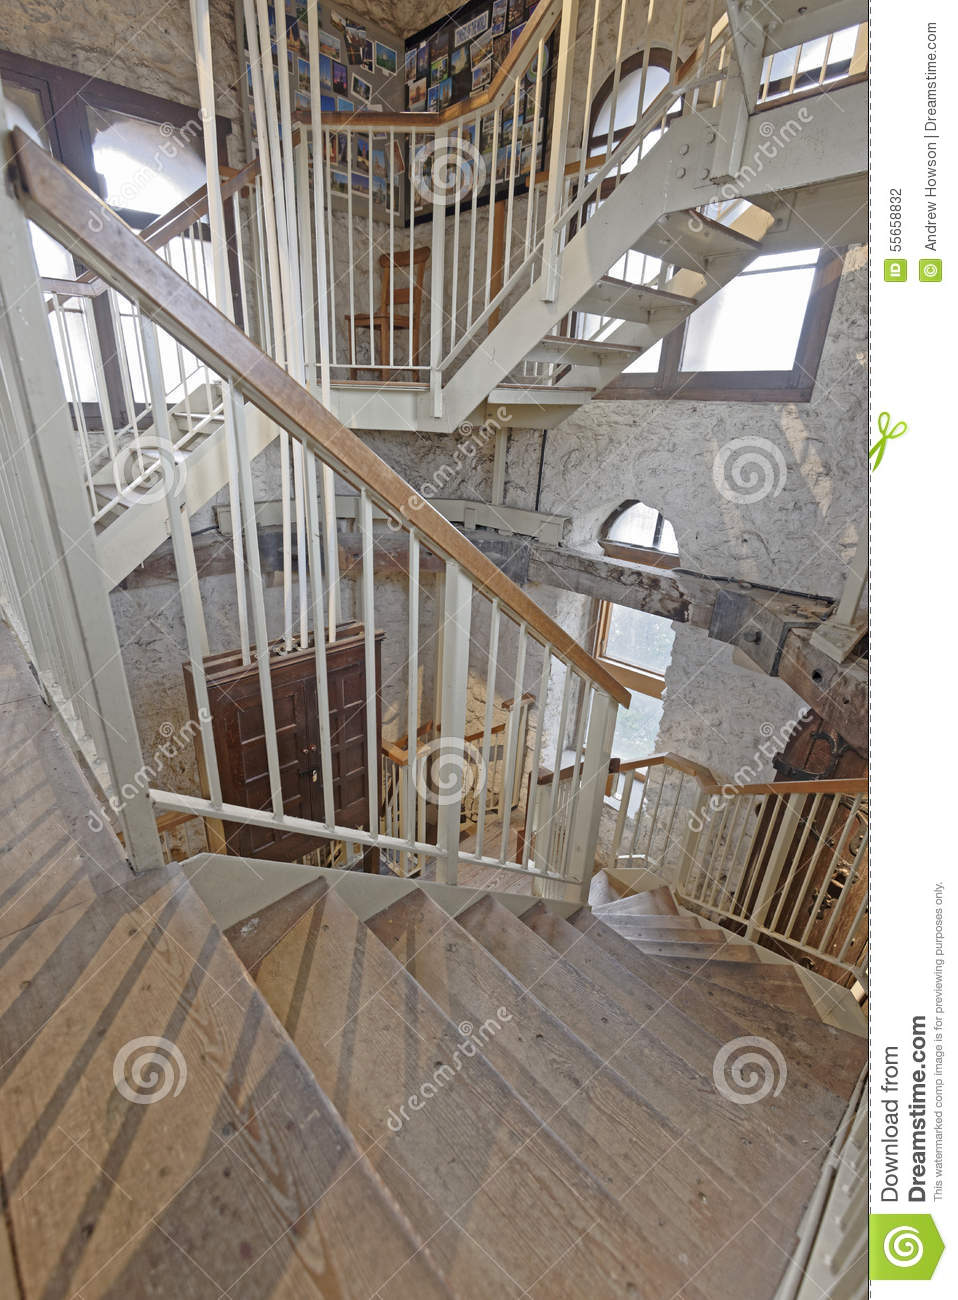 Attractive Interior Image Of Interior Stairs Taken In The Saxon Tower Of St Michaelu0027s,  Oxford, England. The North Gate Is The Oldest Surviving Building In Oxford  At ...